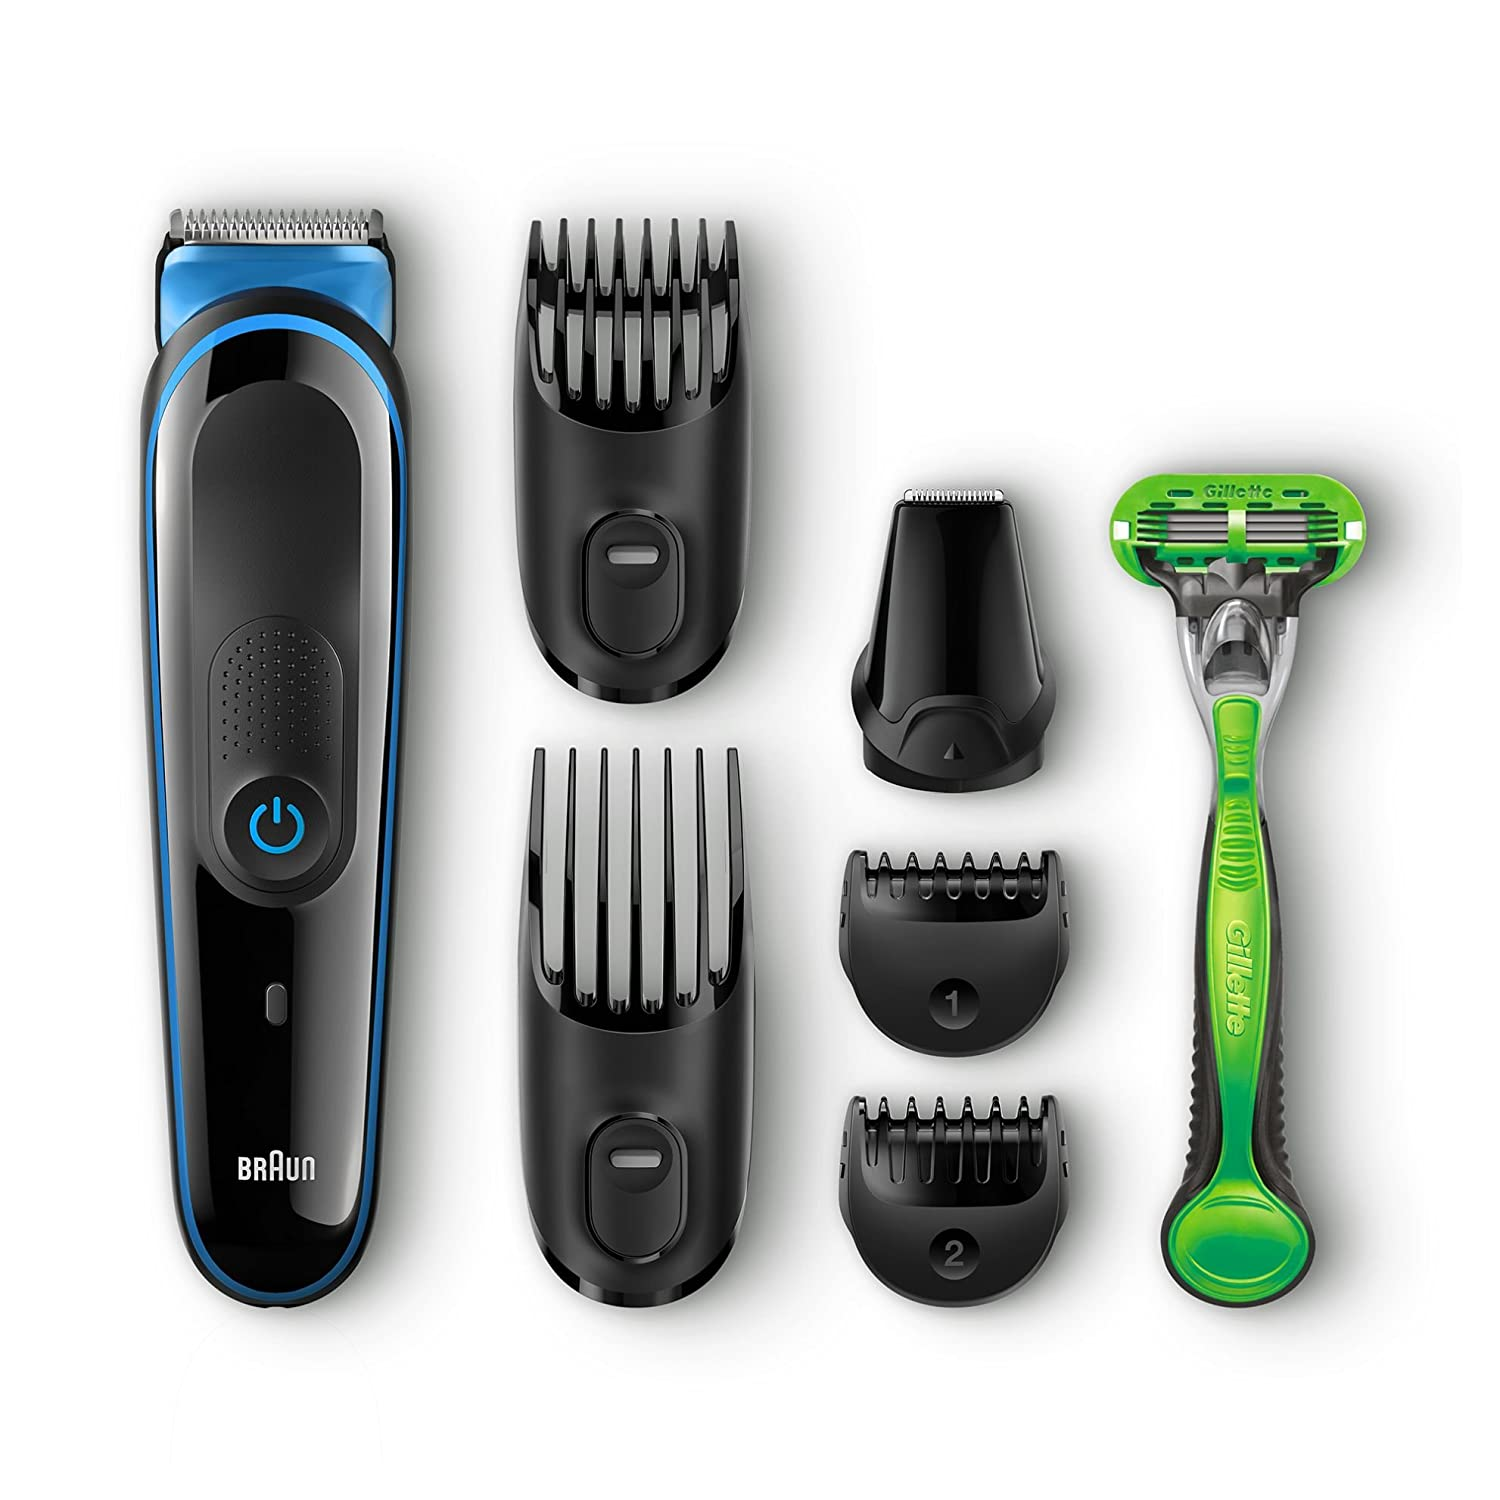 braun 7 in 1 beard hair trimmer multi grooming kit plus gillette body razor ebay. Black Bedroom Furniture Sets. Home Design Ideas